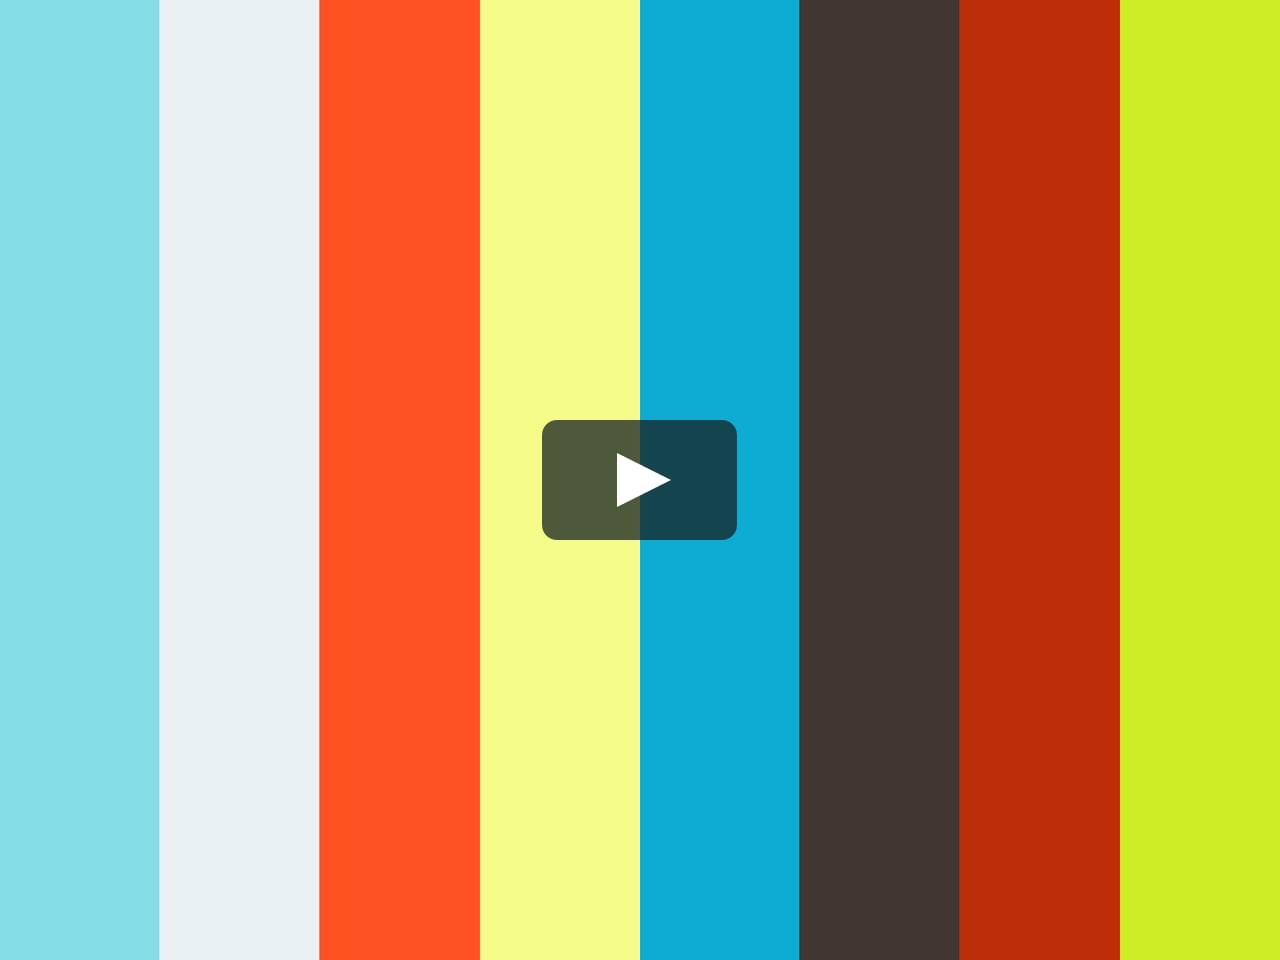 Fuel Filter IC MaxxForce sel on Vimeo on peterbilt fuel filter, maxxforce fuel filter, mercedes benz fuel filter, volvo fuel filter, kenworth fuel filter,